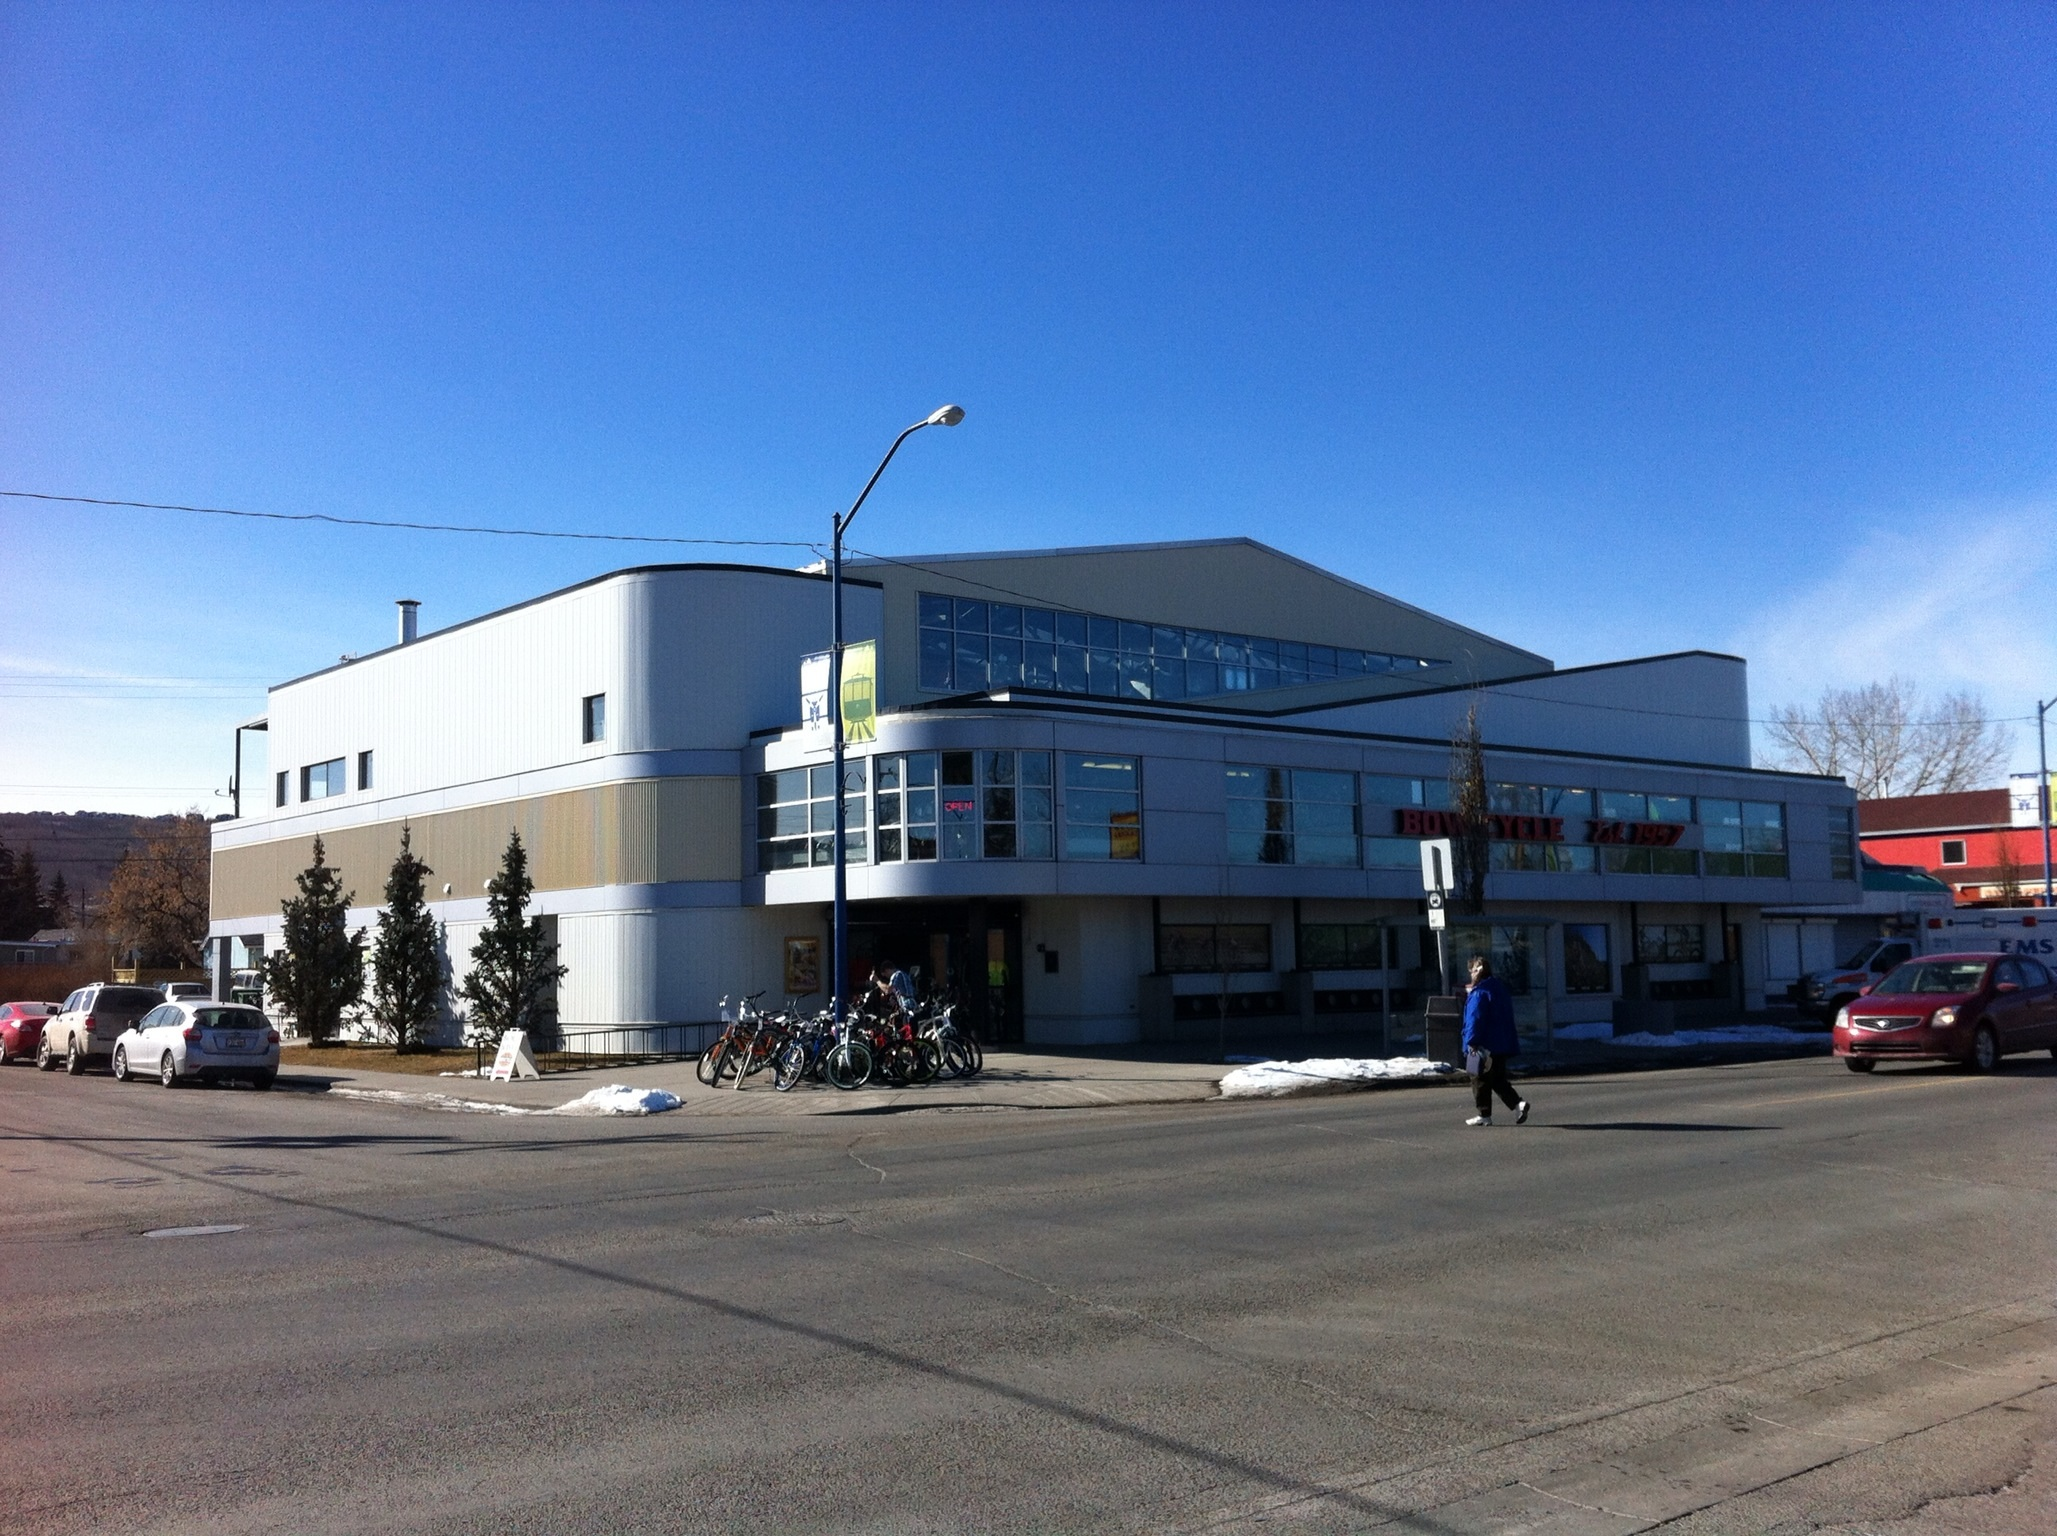 Bow Cycle building one of Canada's best bike stores. Anchor tenant for Main Street.